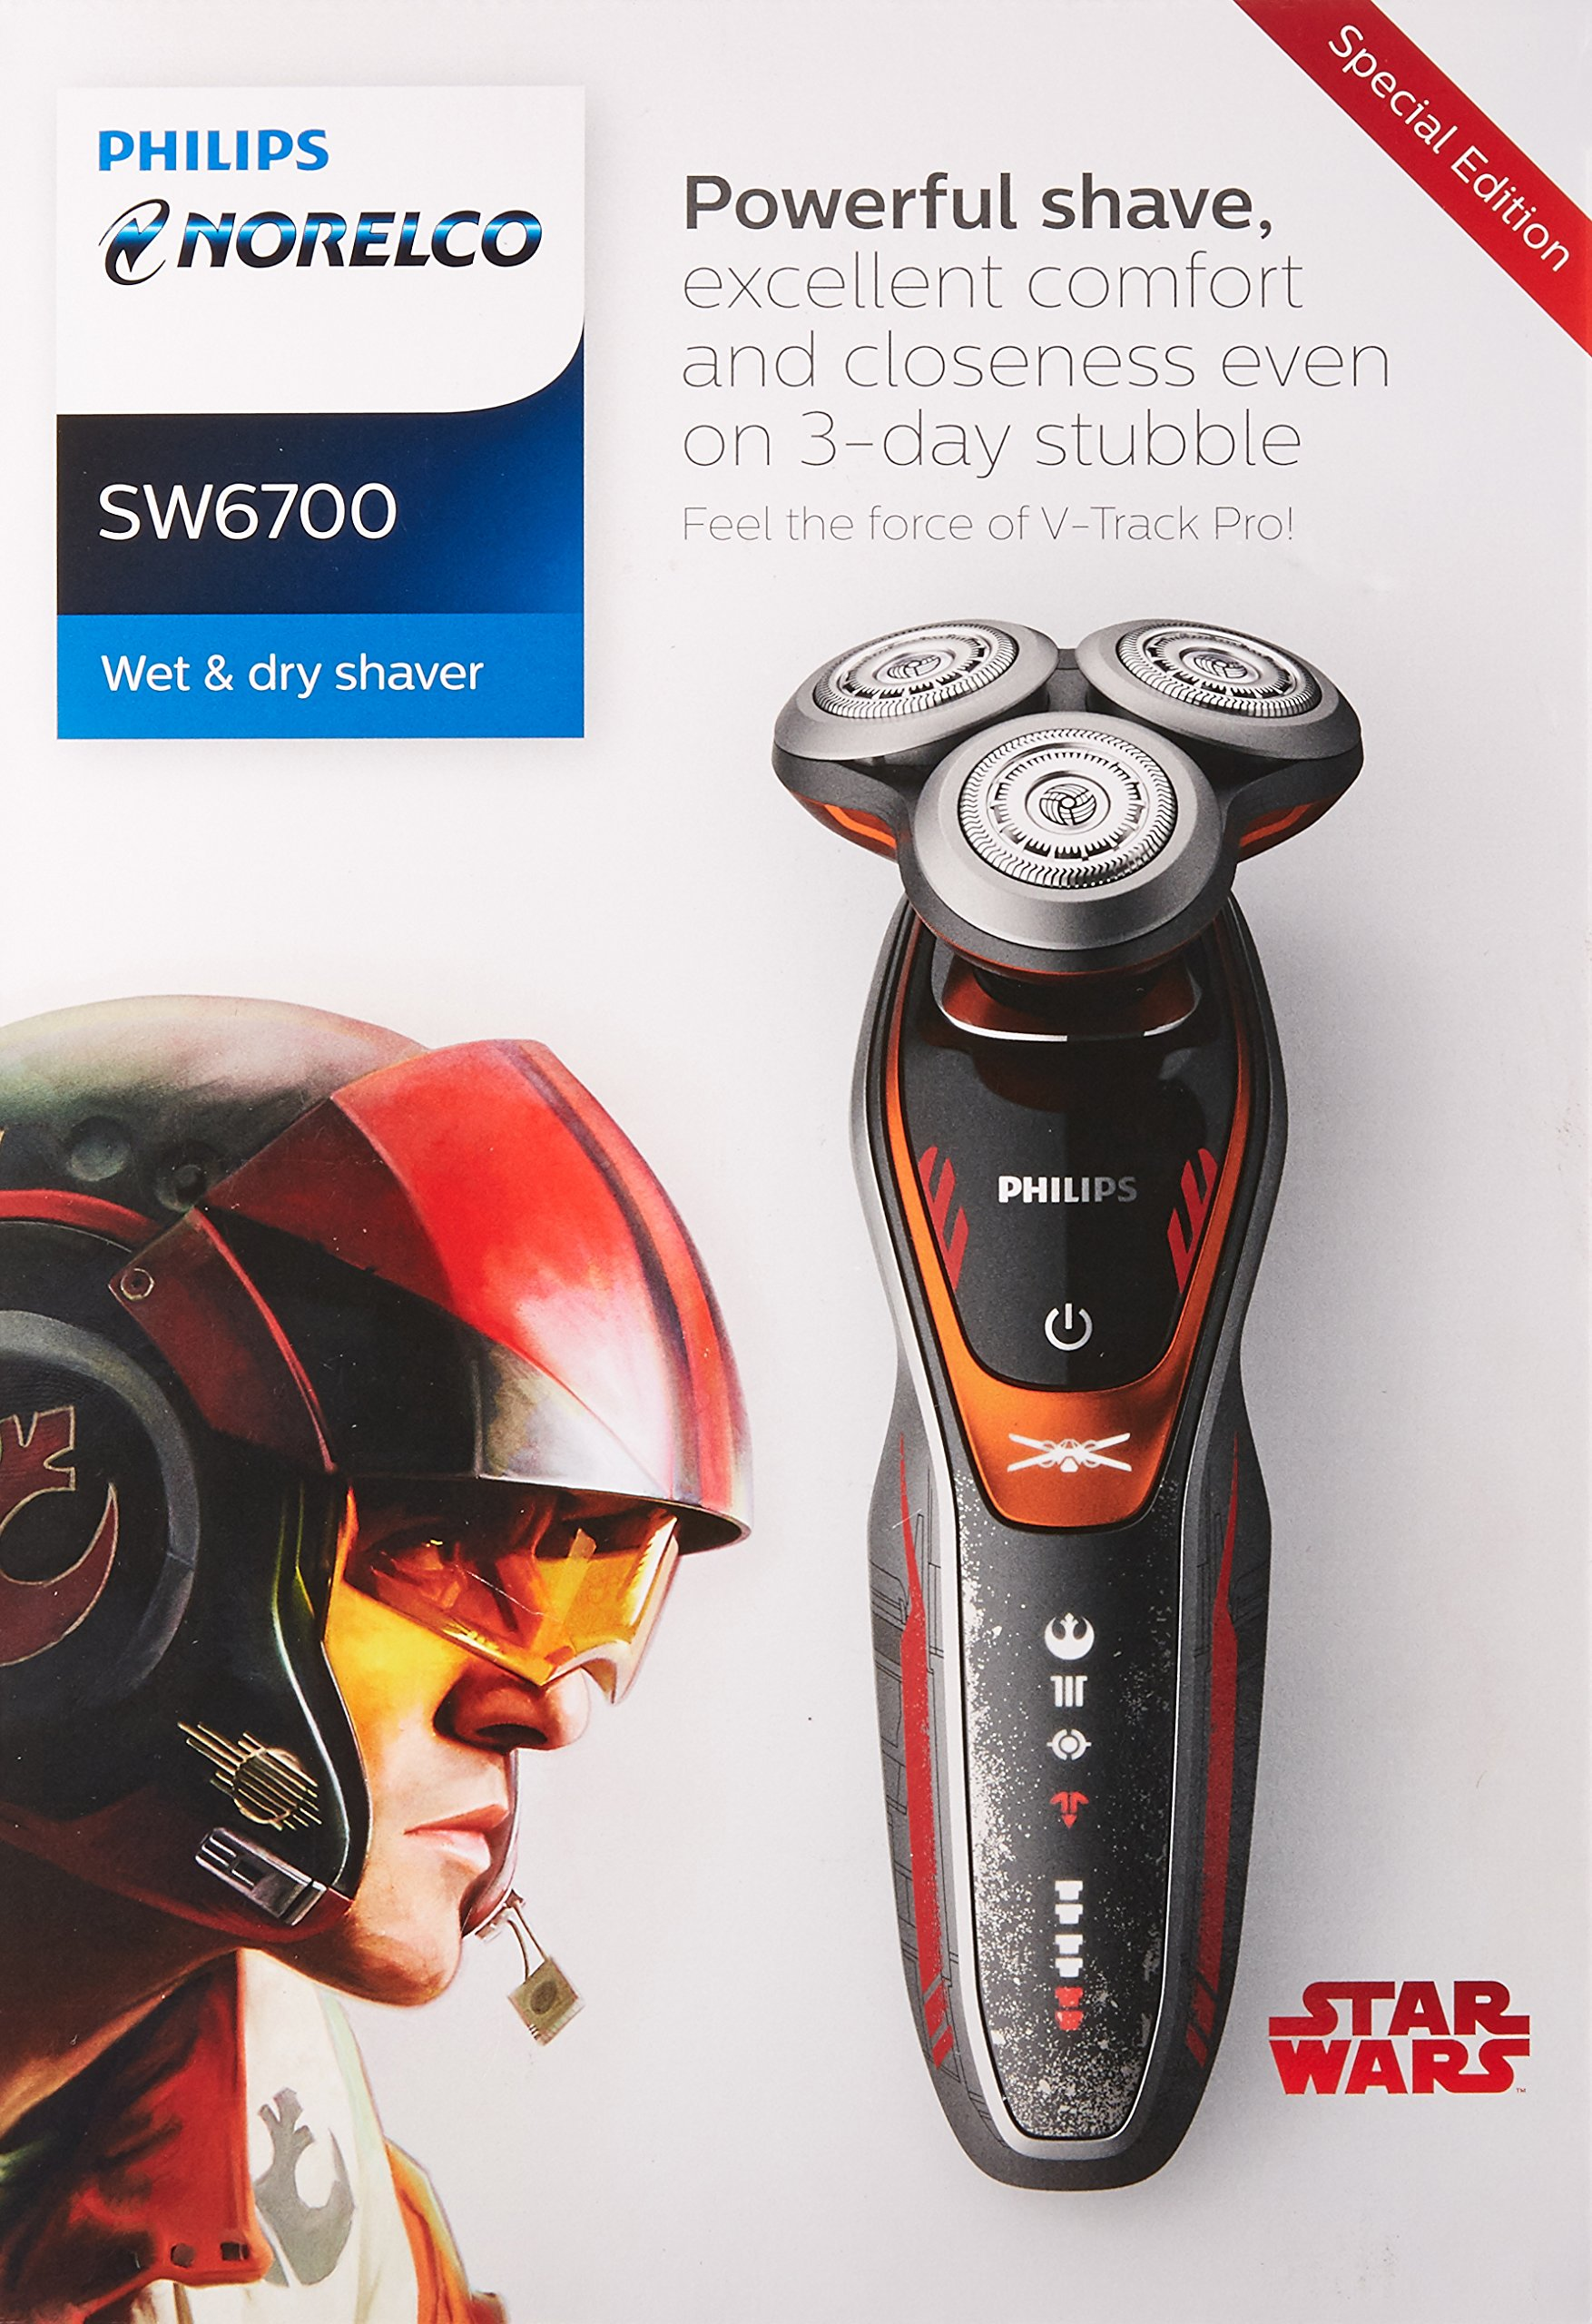 Philips Norelco Special Edition Star Wars Poe Wet & Dry Electric Shaver, SW6700/91, with Turbo+ mode and Precision Trimmer by Philips Norelco (Image #3)